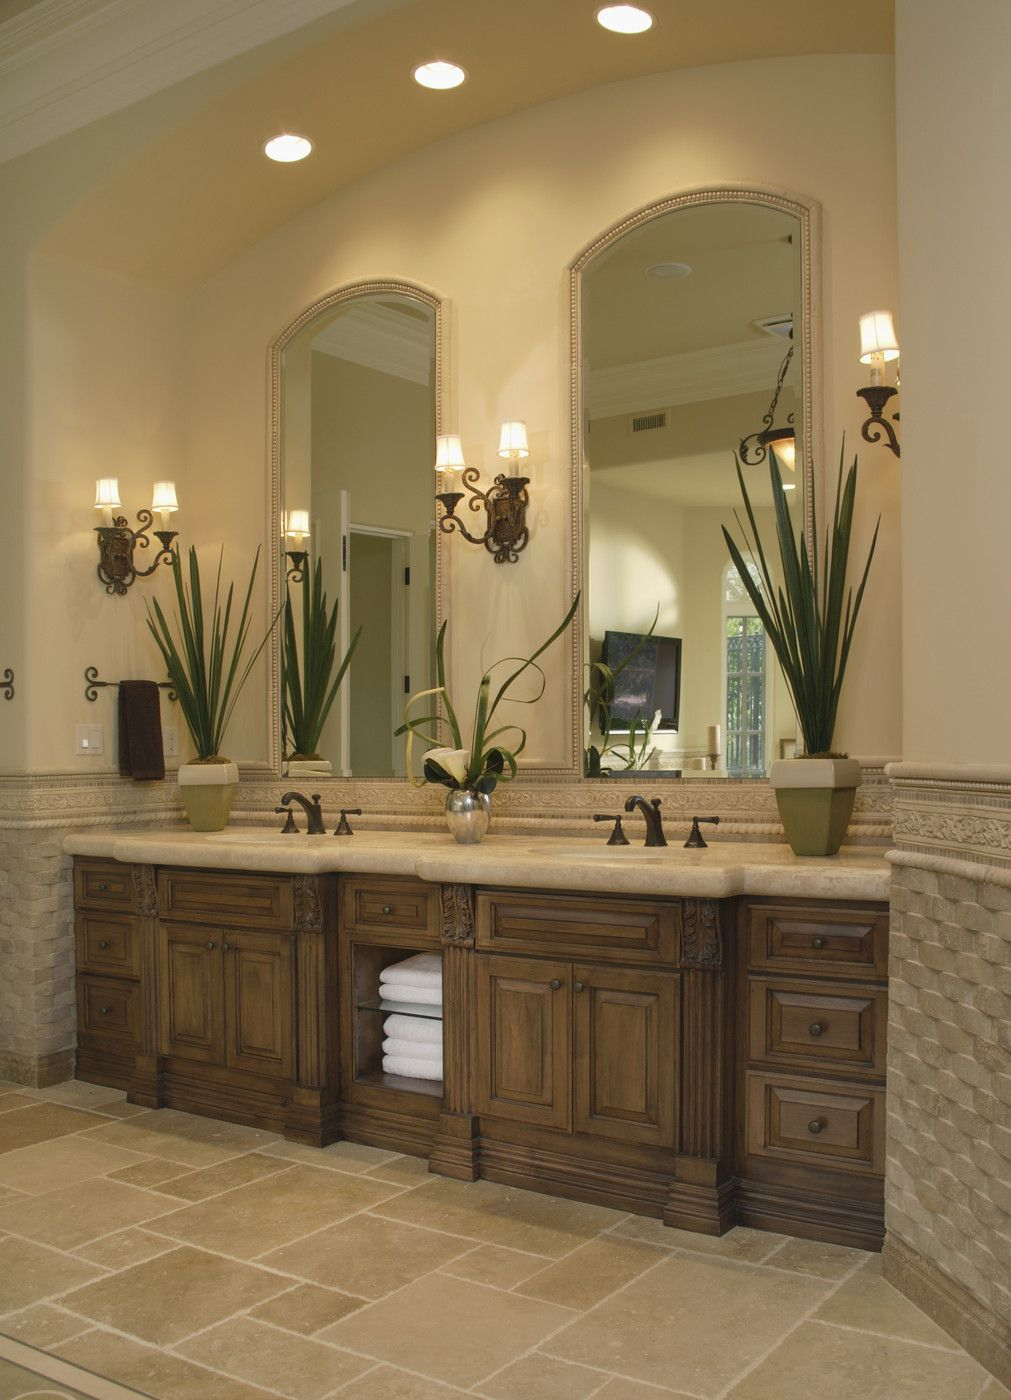 Vanity Lights For Bathroom Light up the area evenly.